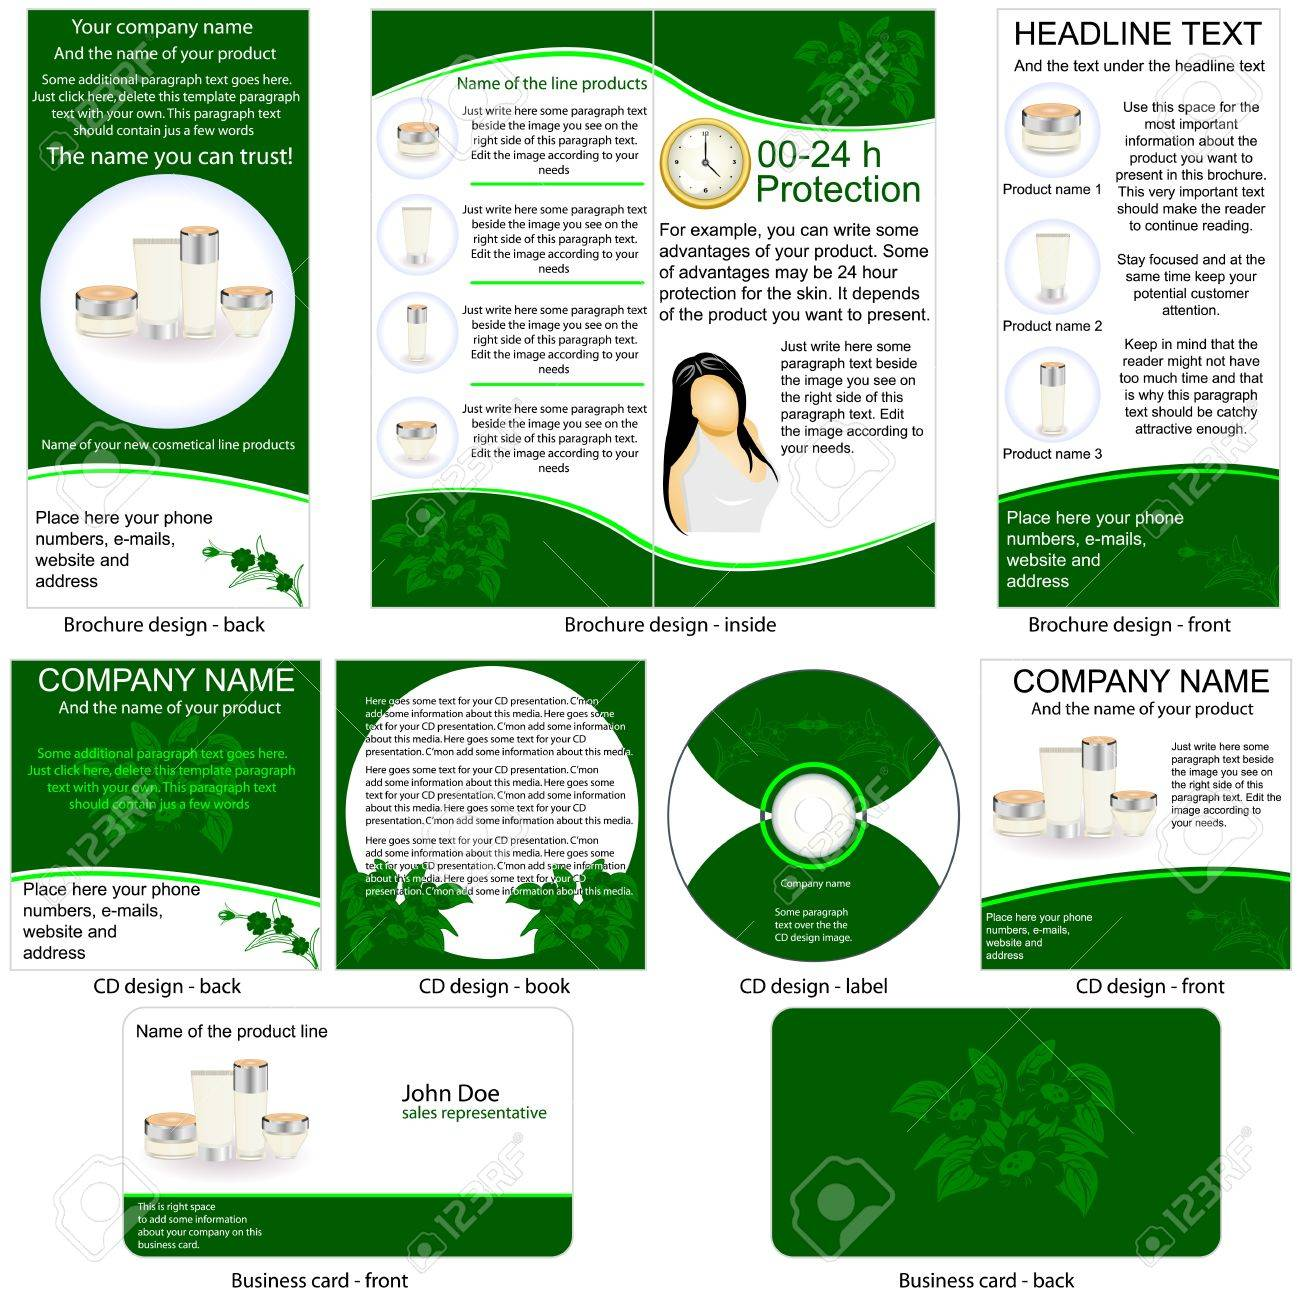 Cosmetic product stationary - brochure design, CD cover design and business card design in one package and fully editable. Stock Vector - 12321351